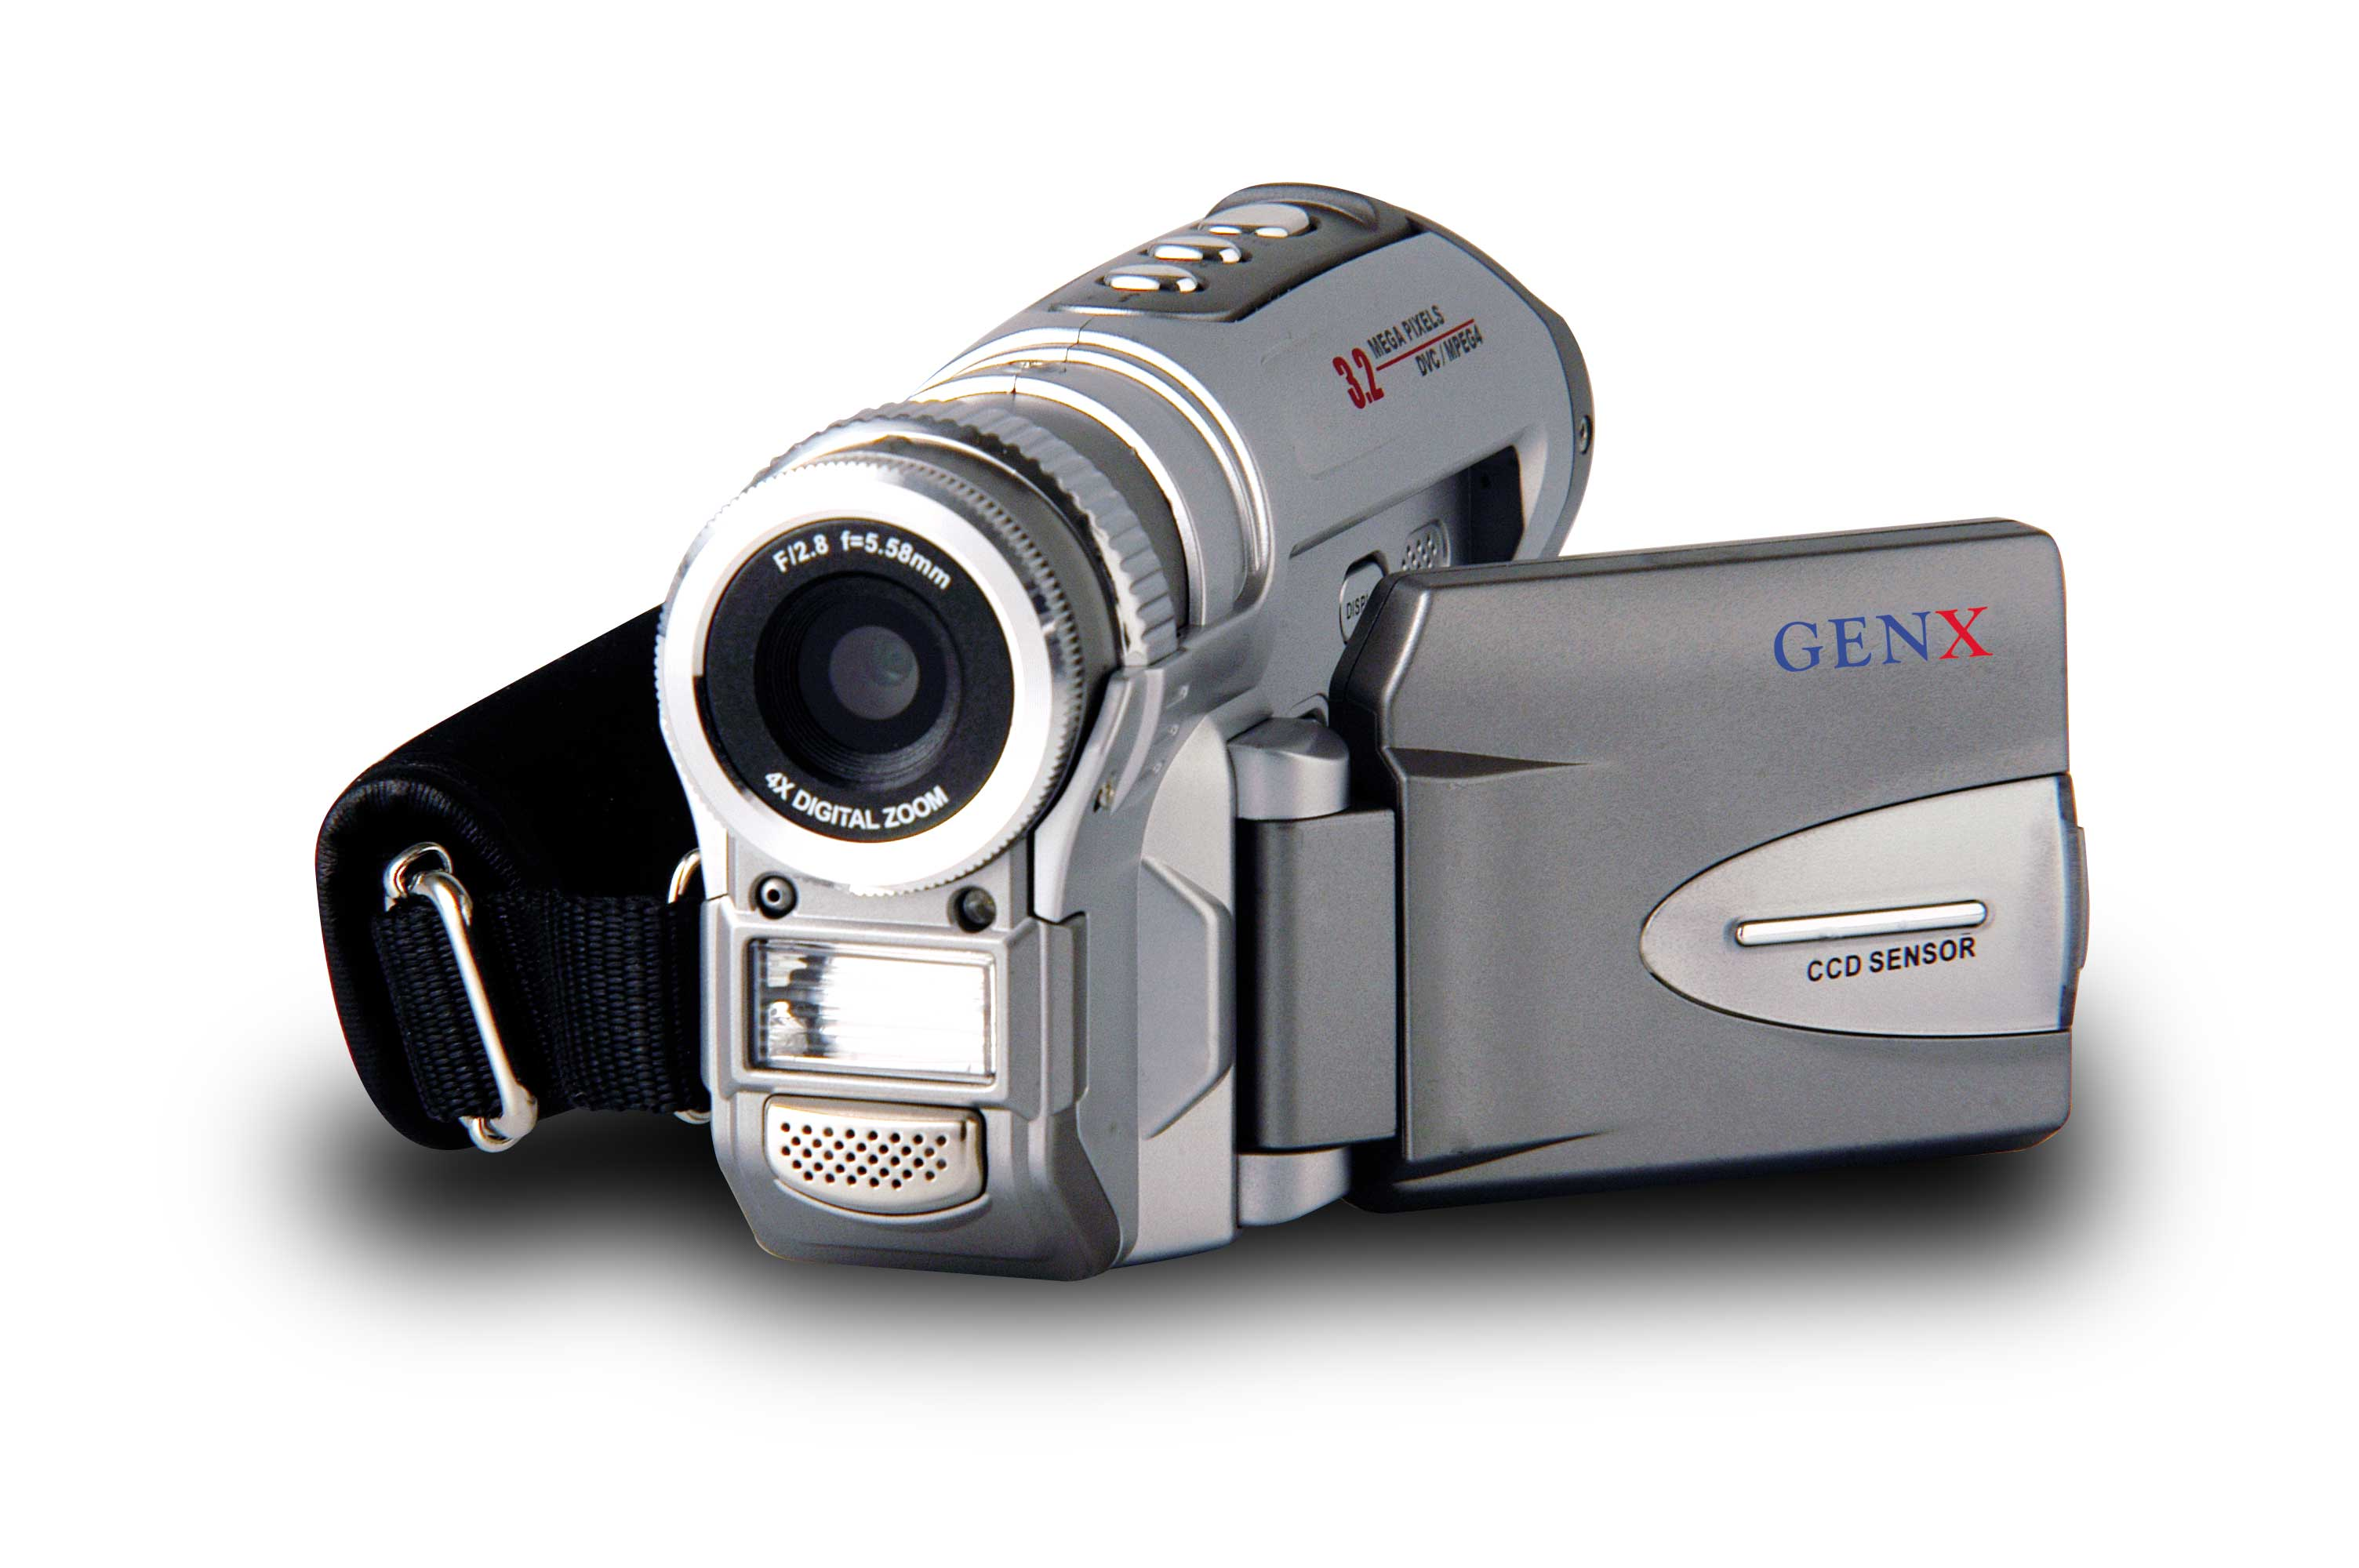 digital video camera images - photo #3